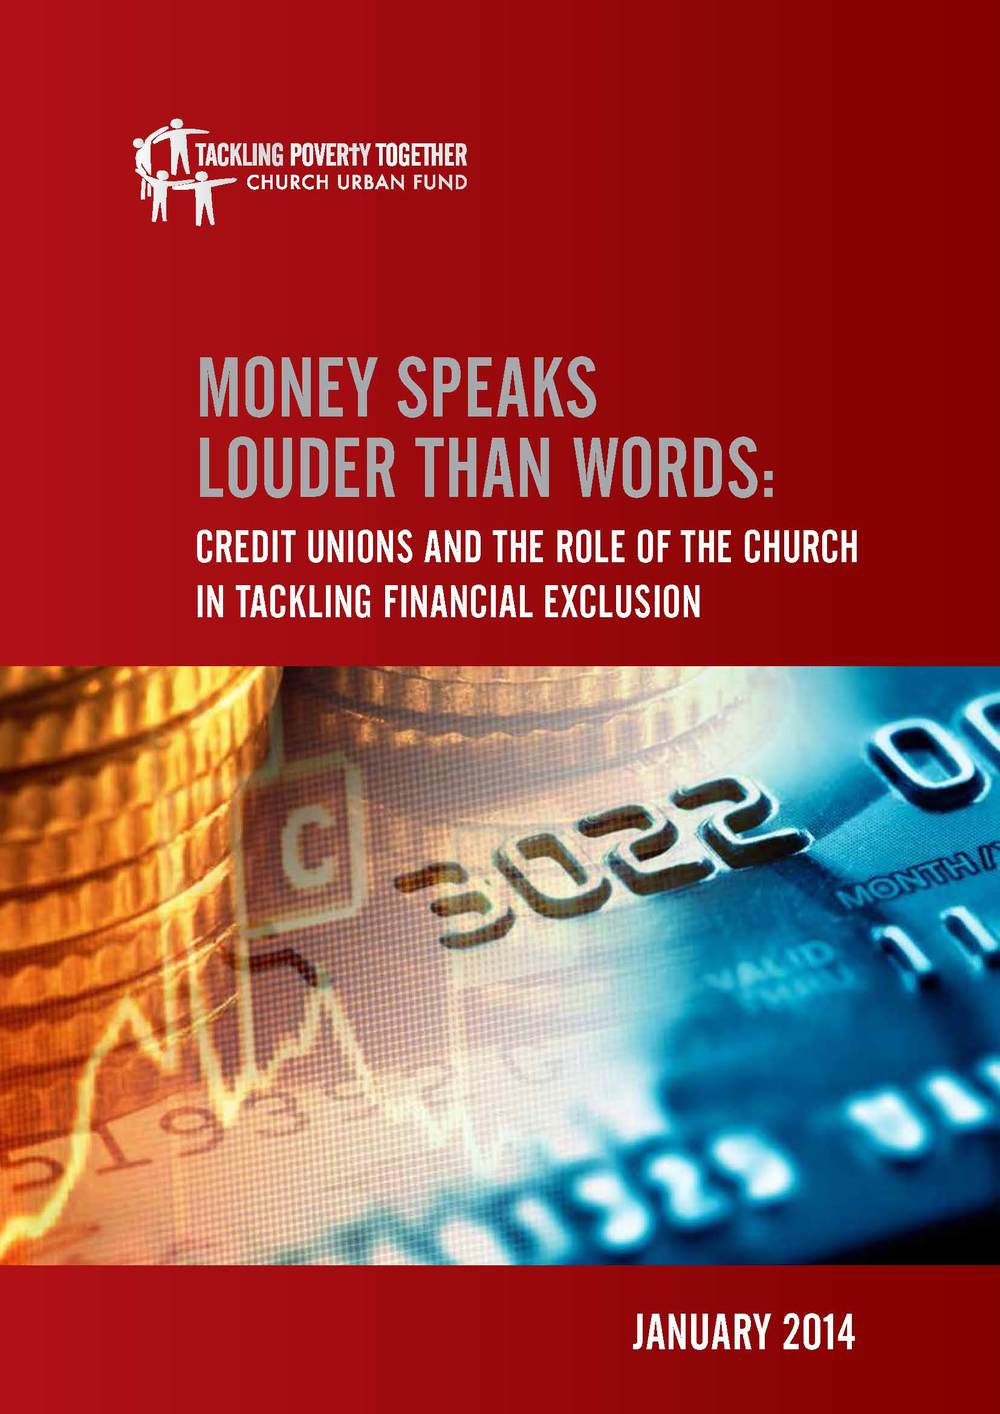 About Credit Unions and the role of the Church in tackling financial exclusion Church Urban Fund Download PDF (232kb)